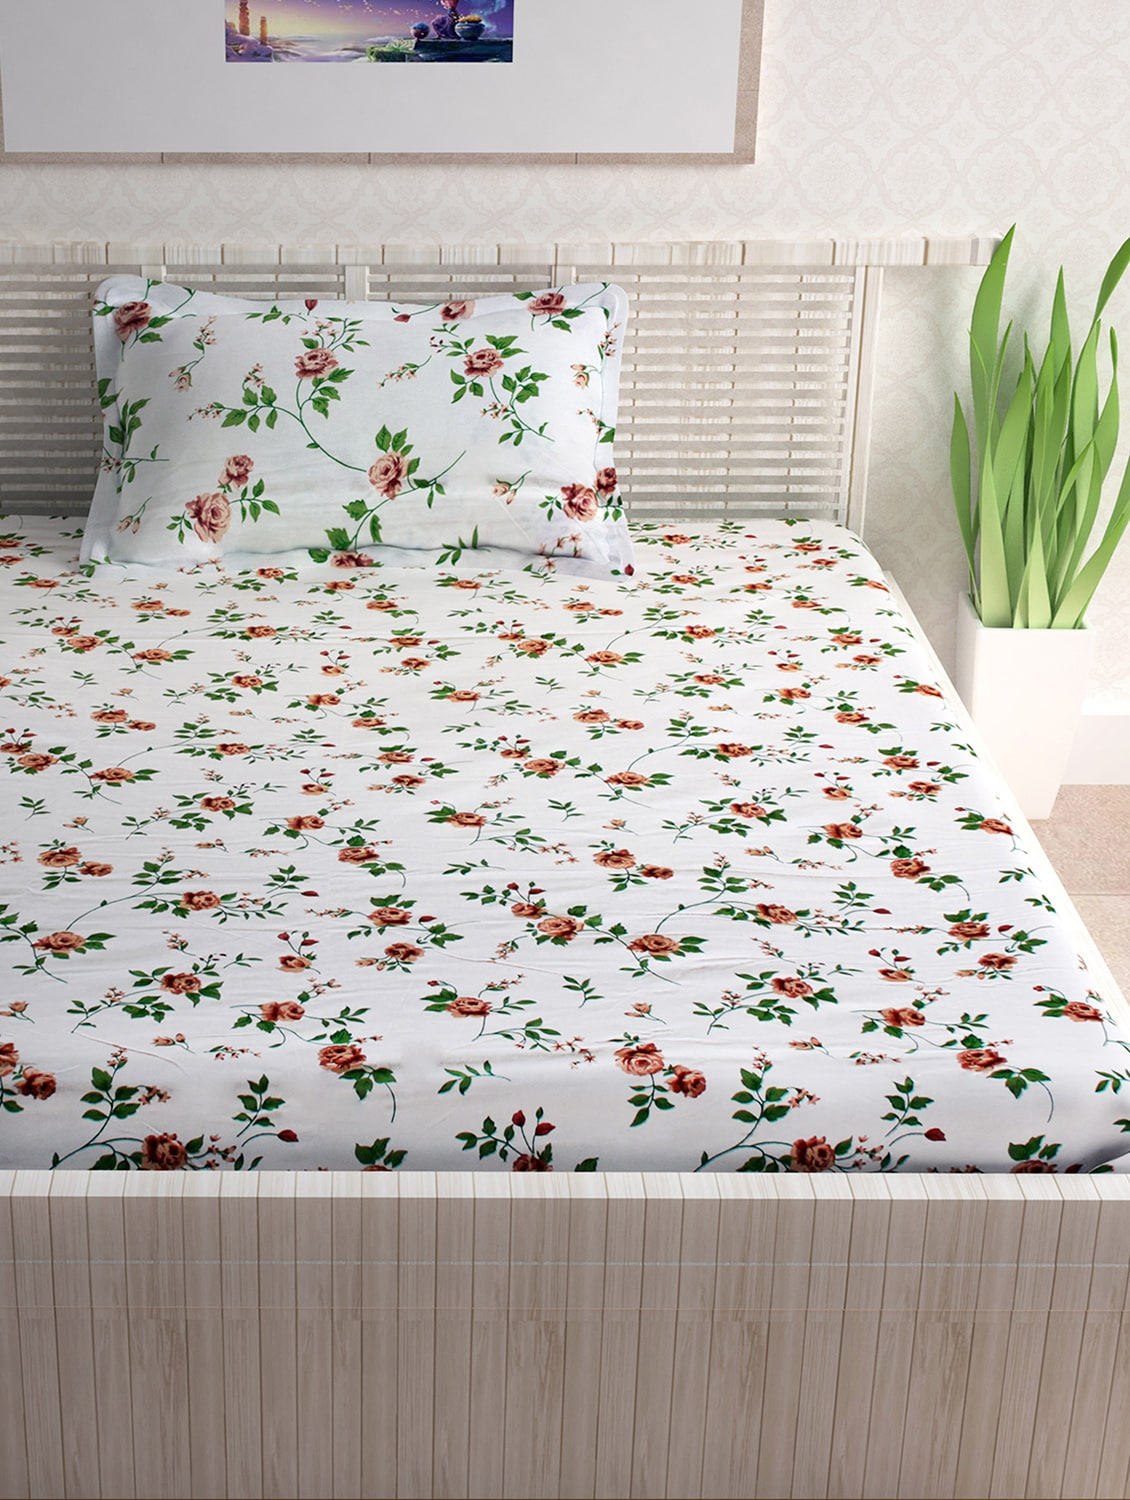 Buy 100% Cotton 120tc Single Bedsheet With 1 Pillow Cover By Divine Casa    Online Shopping For Bed Sheet Sets In India | 15365792